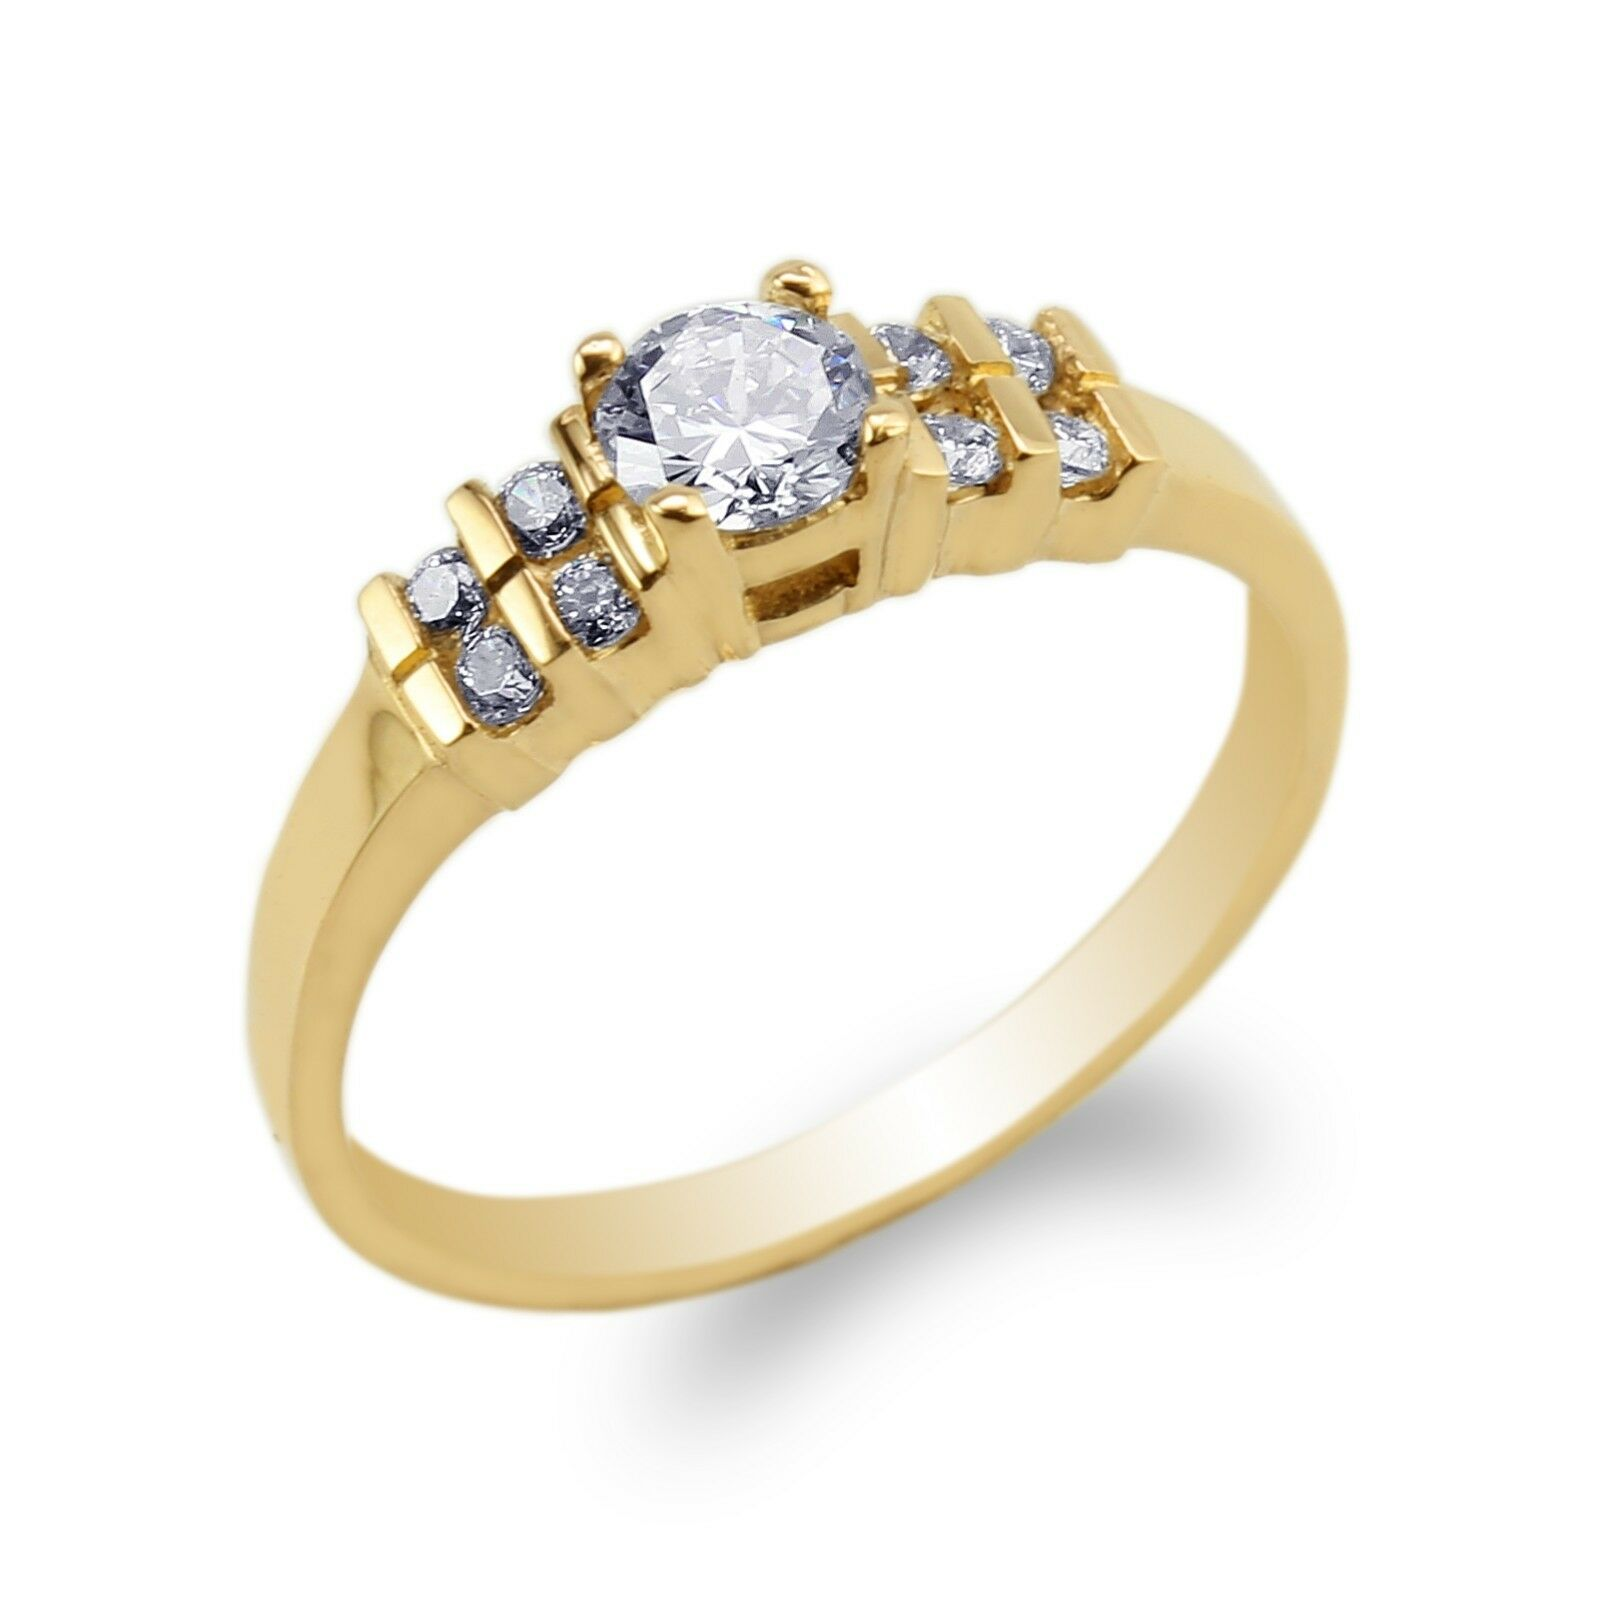 16f8e00493aed Womens 10K 14K Yellow gold Round CZ Elegant Engagement Ring Size 4-9 ...